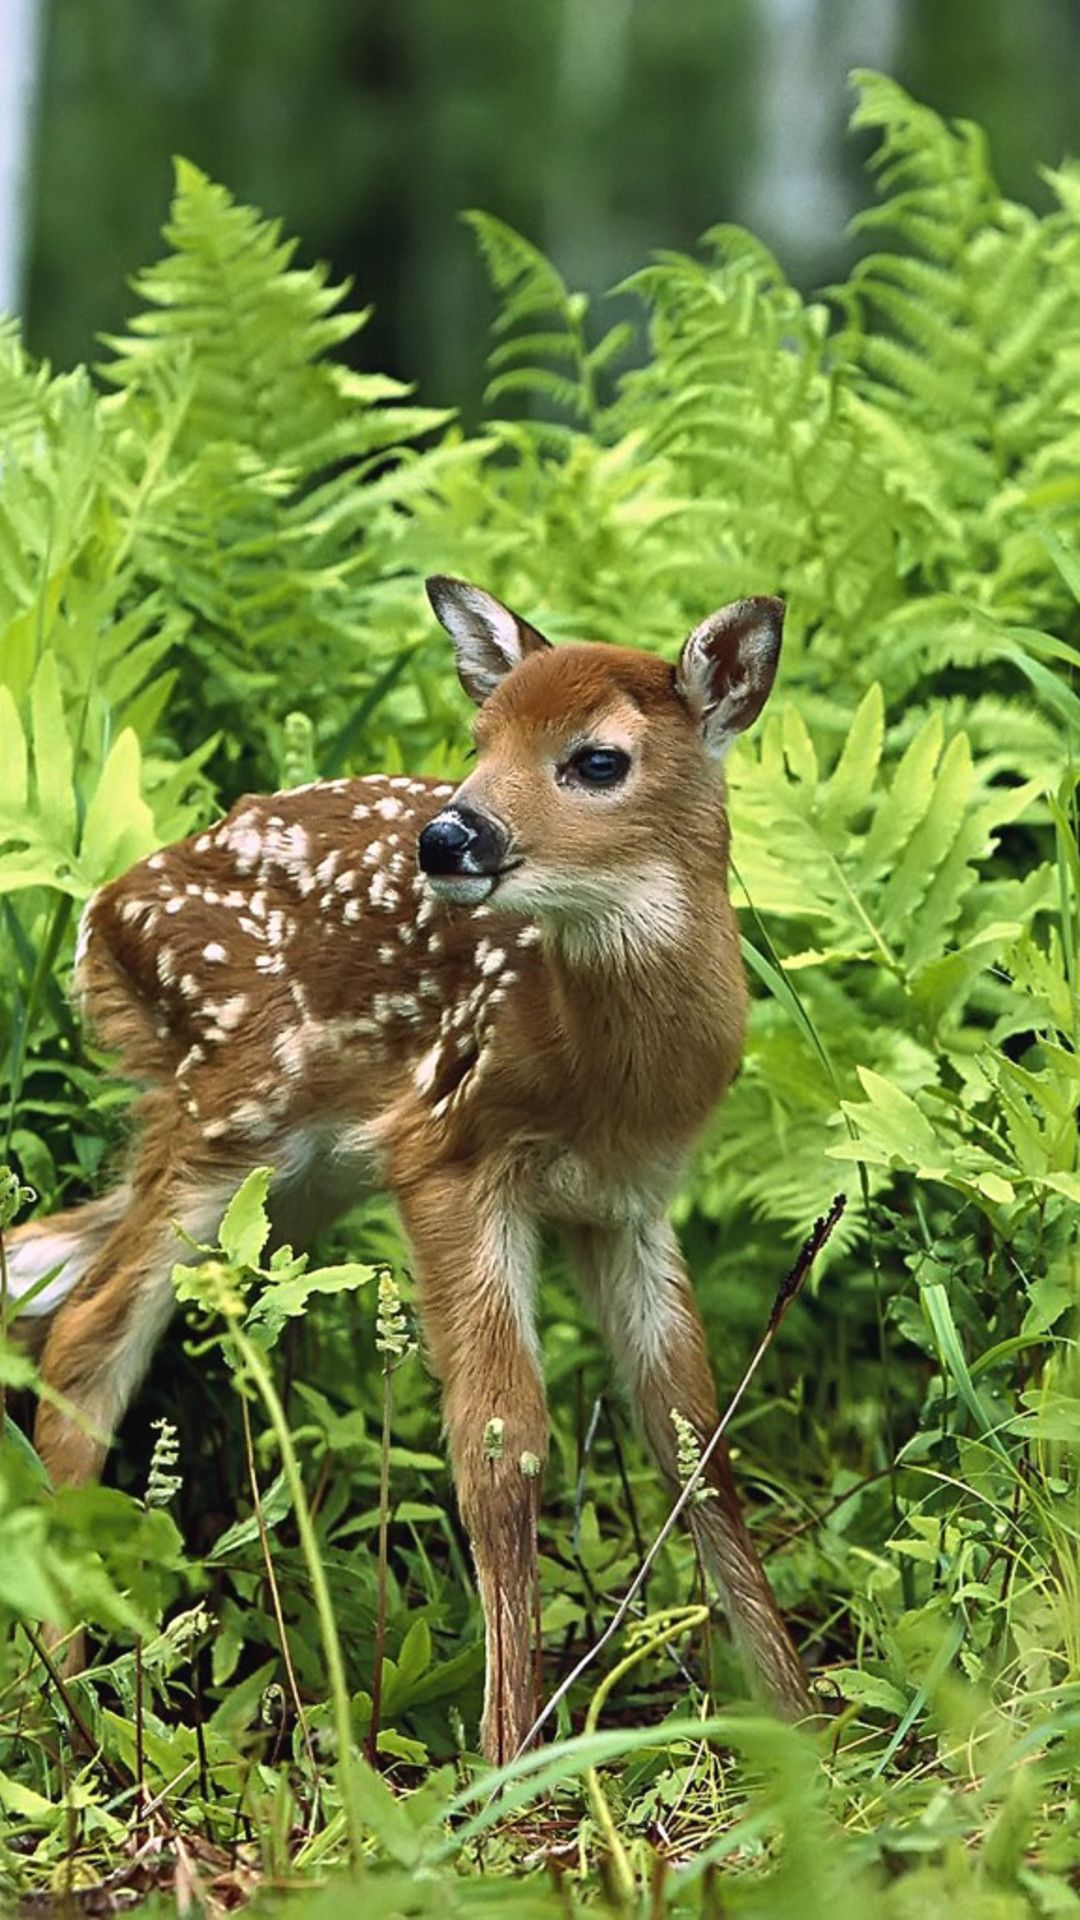 Wallpaper Download 1080x1920 A Sweet Baby Deer In The Grass Forest Wild Animals Wallpapers